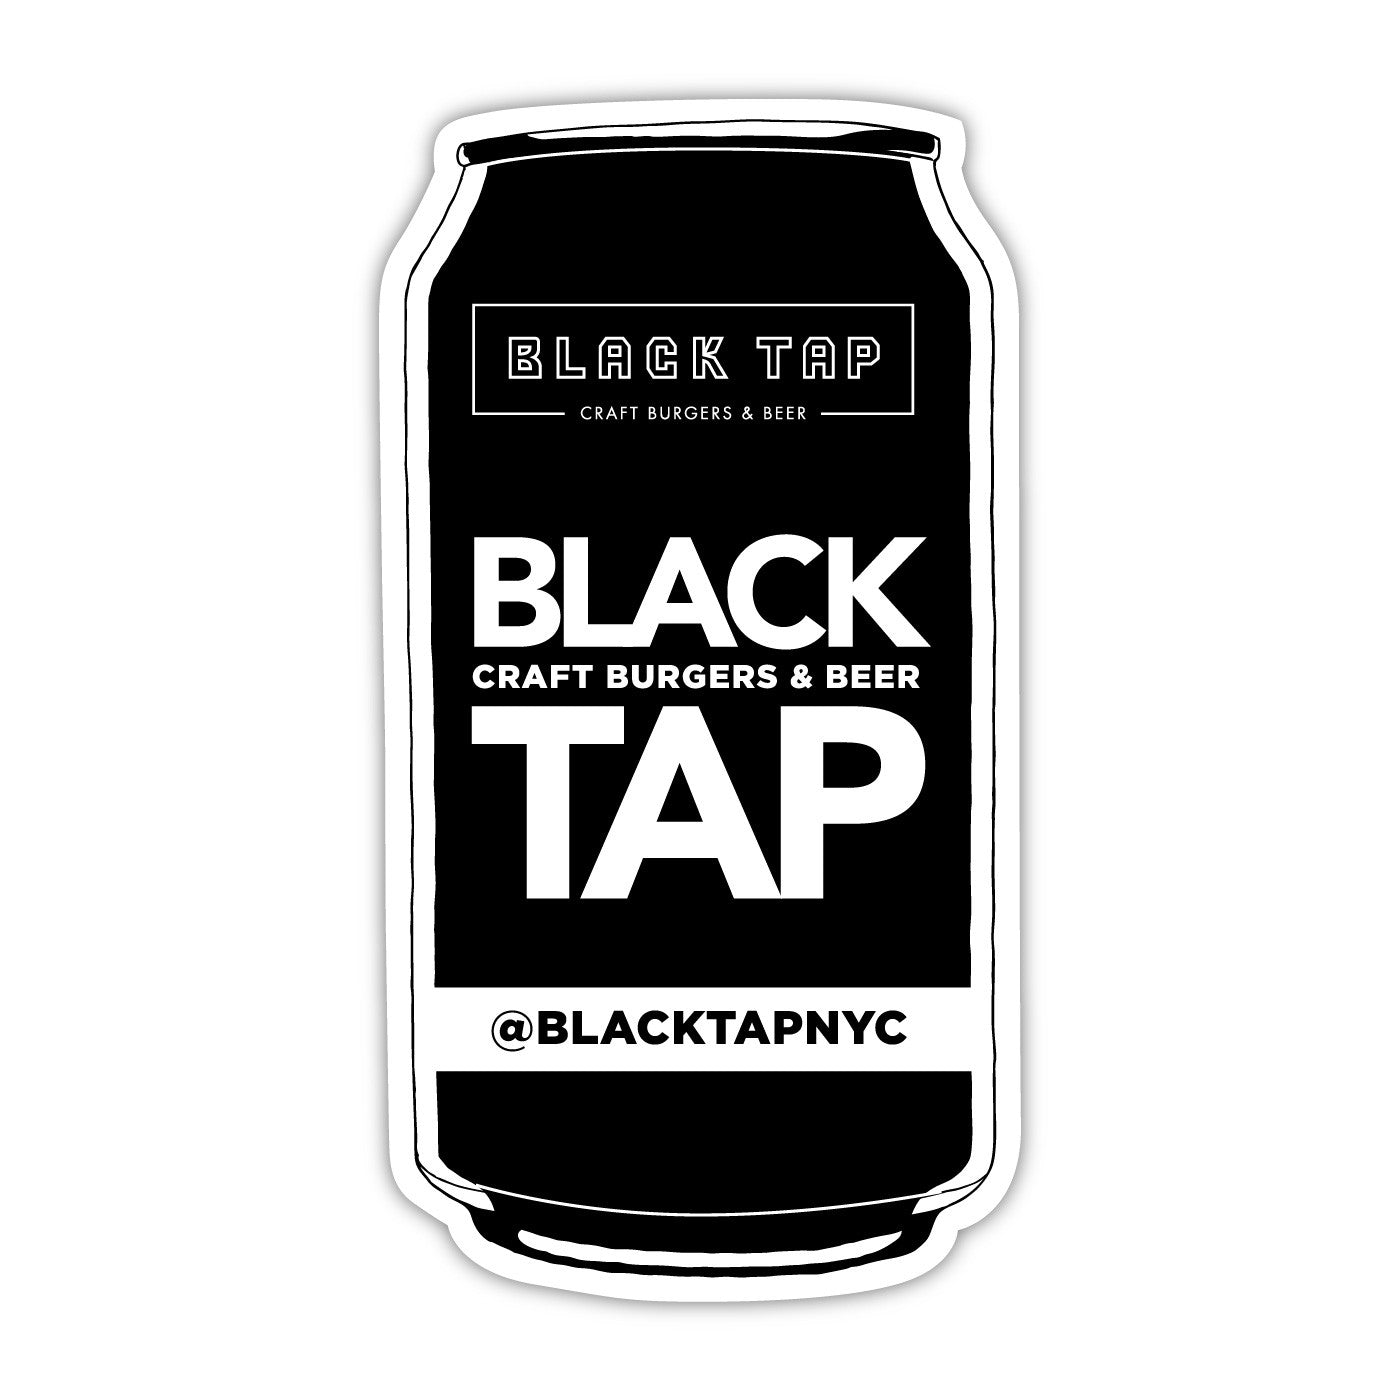 beer can style cut out sticker with our logo and instagram handle, @blacktapnyc